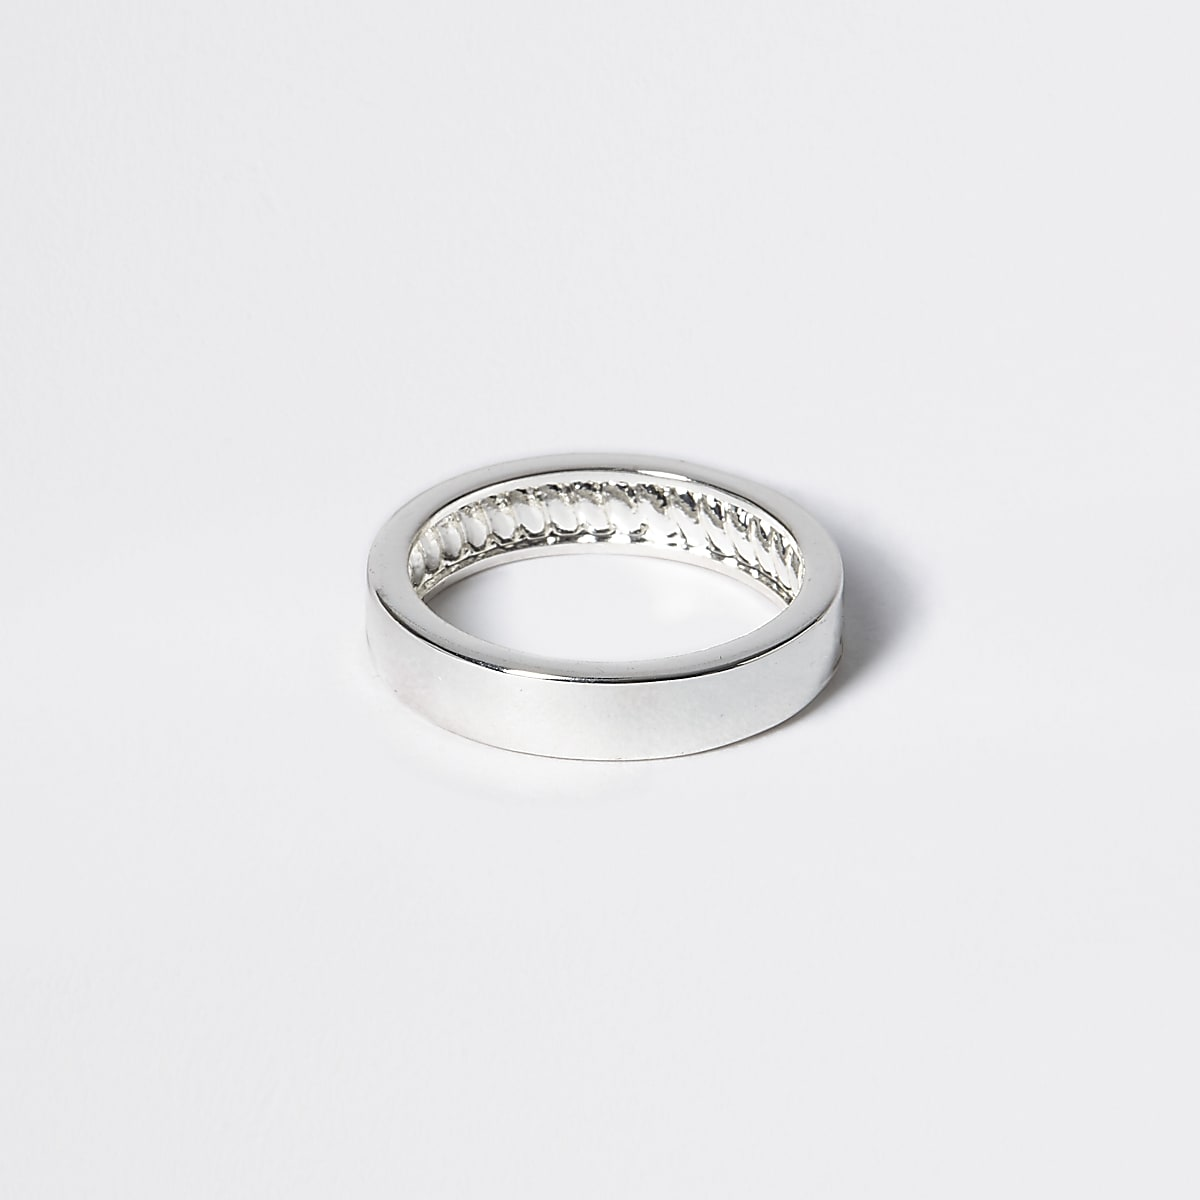 Studio silver plated band ring